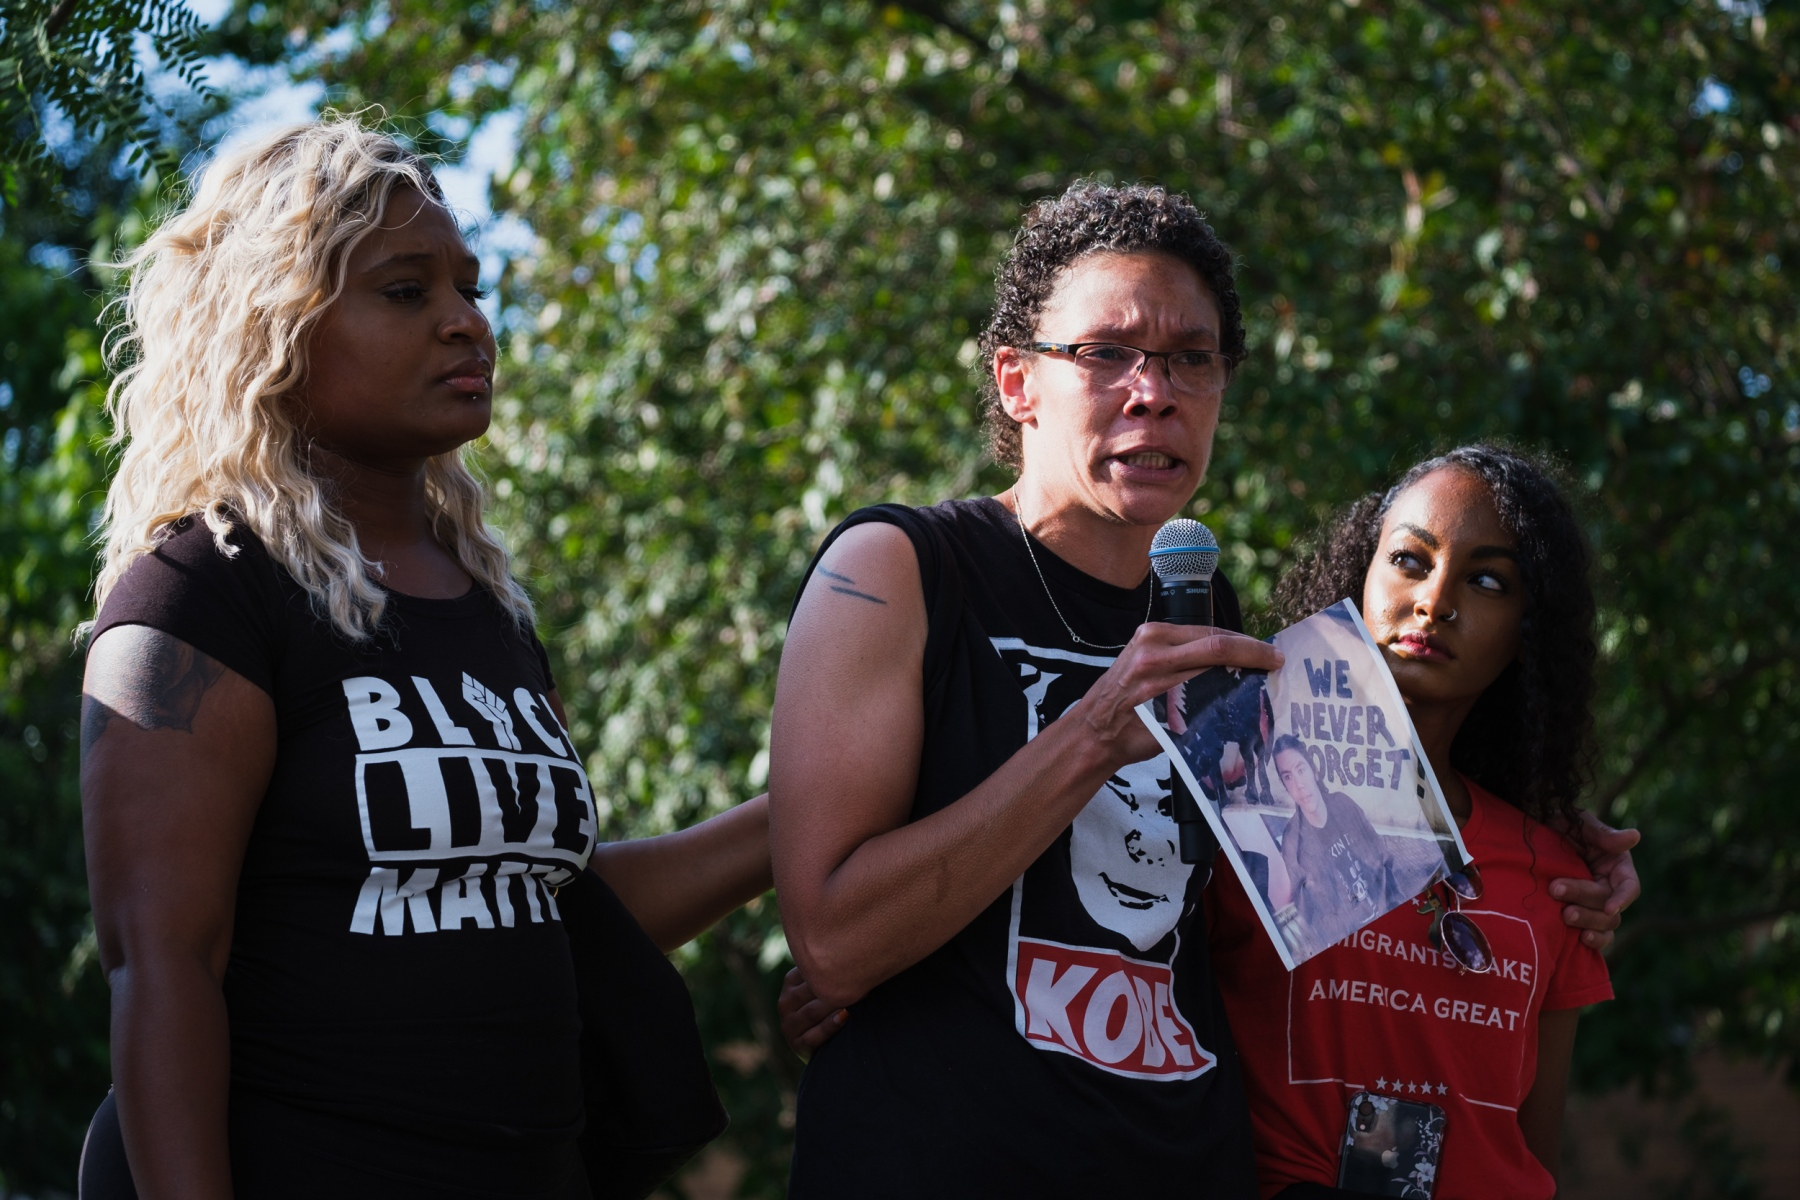 Toshira Garraway (left) and Sumaya Aden (right) support Amity Dimock (center) as she addresses a crowd gathered to remember the people whose killings by police were not filmed at Mueller Park in Minneapolis, Minnesota on July 24, 2020. Garraway's fiance, Justin Teigen, died after an encounter with the Saint Paul police in 2009. Dimock's son, Kobe Heisler, was shot and killed by Brooklyn Center police in 2019. Aden's brother, Isak, was shot and killed by Minneapolis police last year.